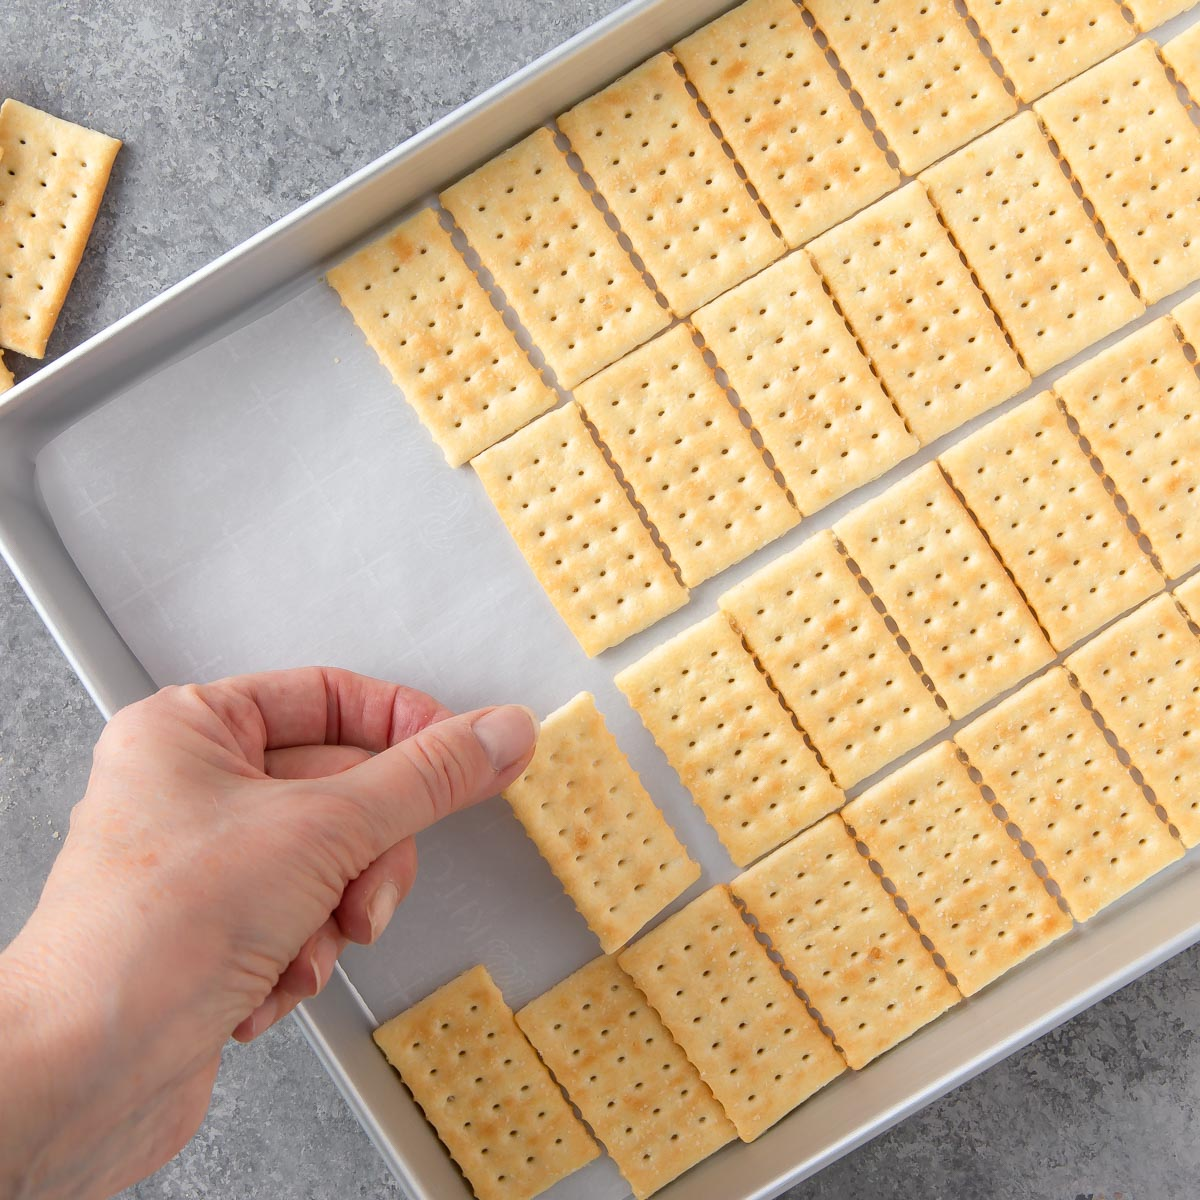 jelly roll pan with a hand placing crackers on it